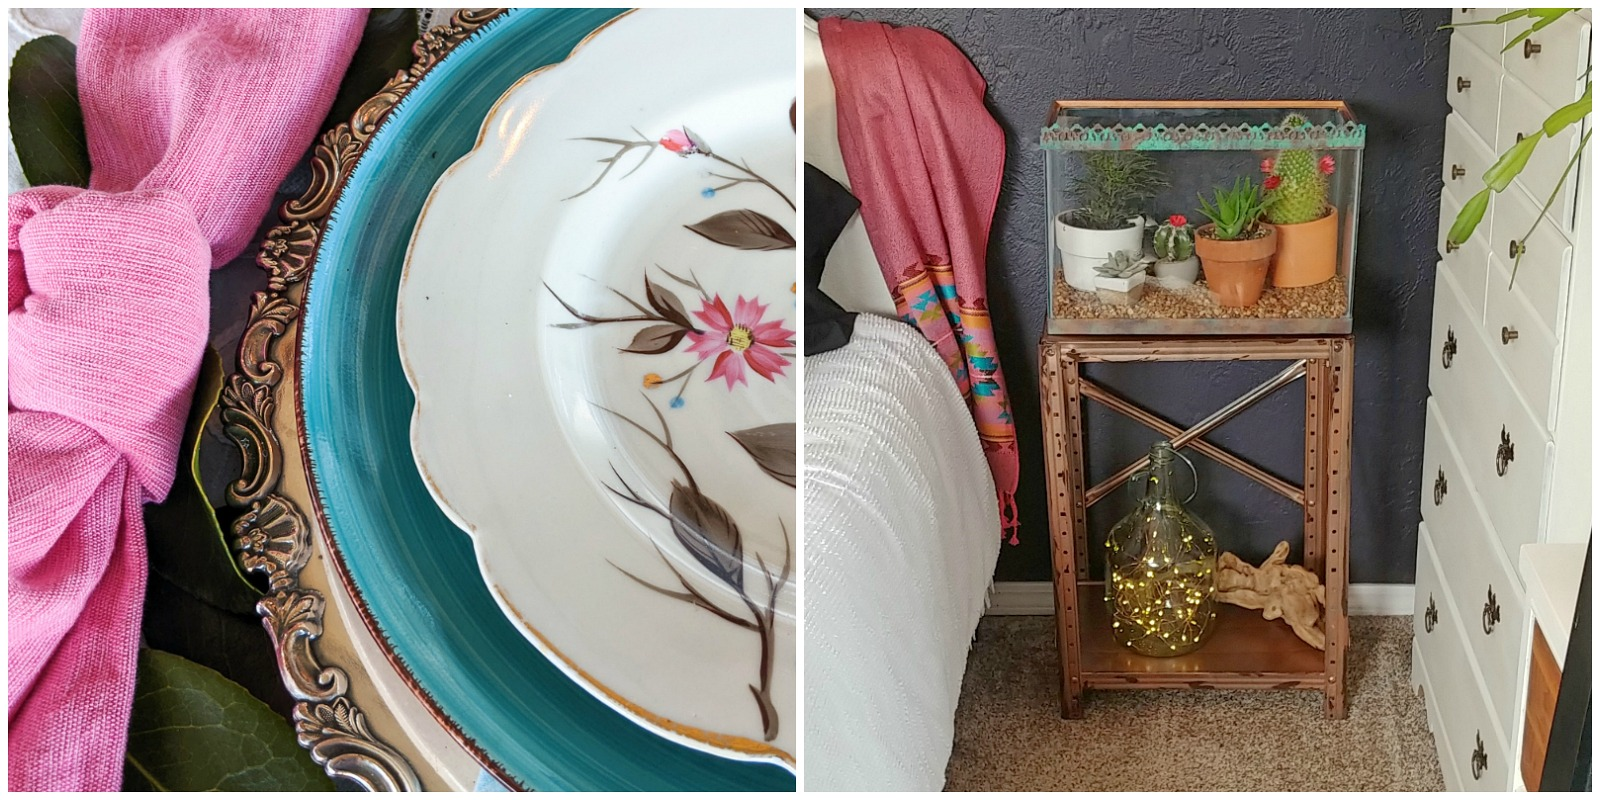 Floral Decor and Garden Home Decor by the Creative Vintage Darlings